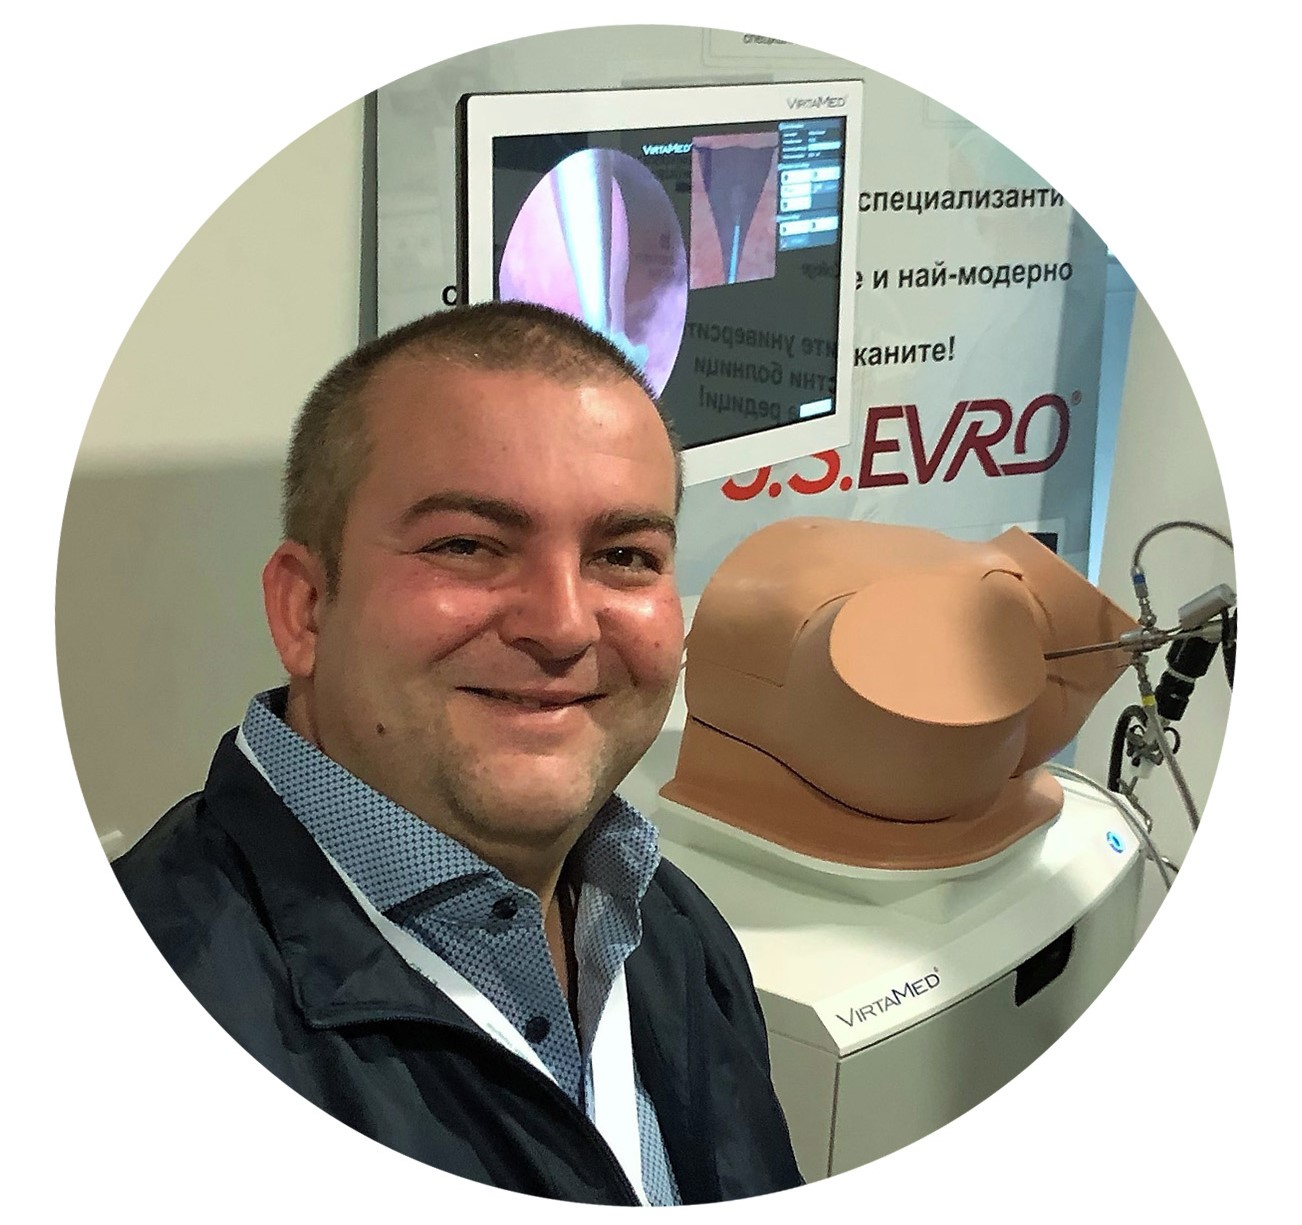 Image of Stefan Strnad with VirtaMed GynoS™